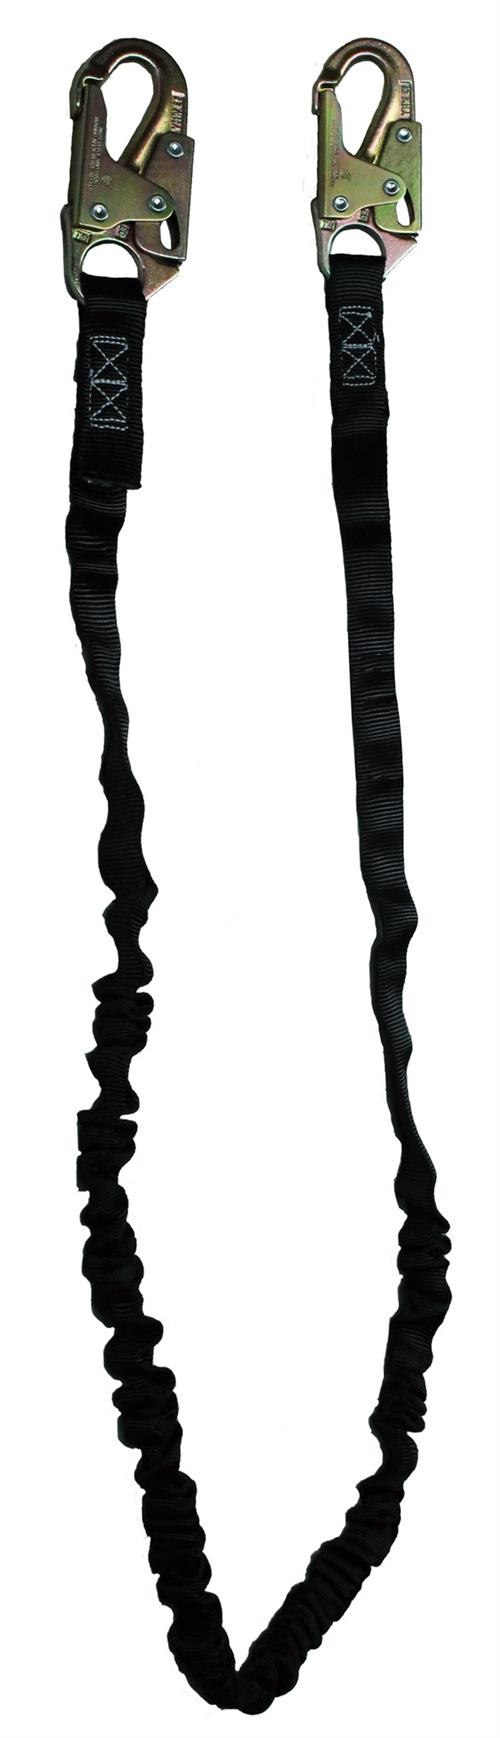 SafeWaze FS580 Series Tubular / Low Profile Lanyards, Snap or Rebar Hook and Single or Dual Leg Options